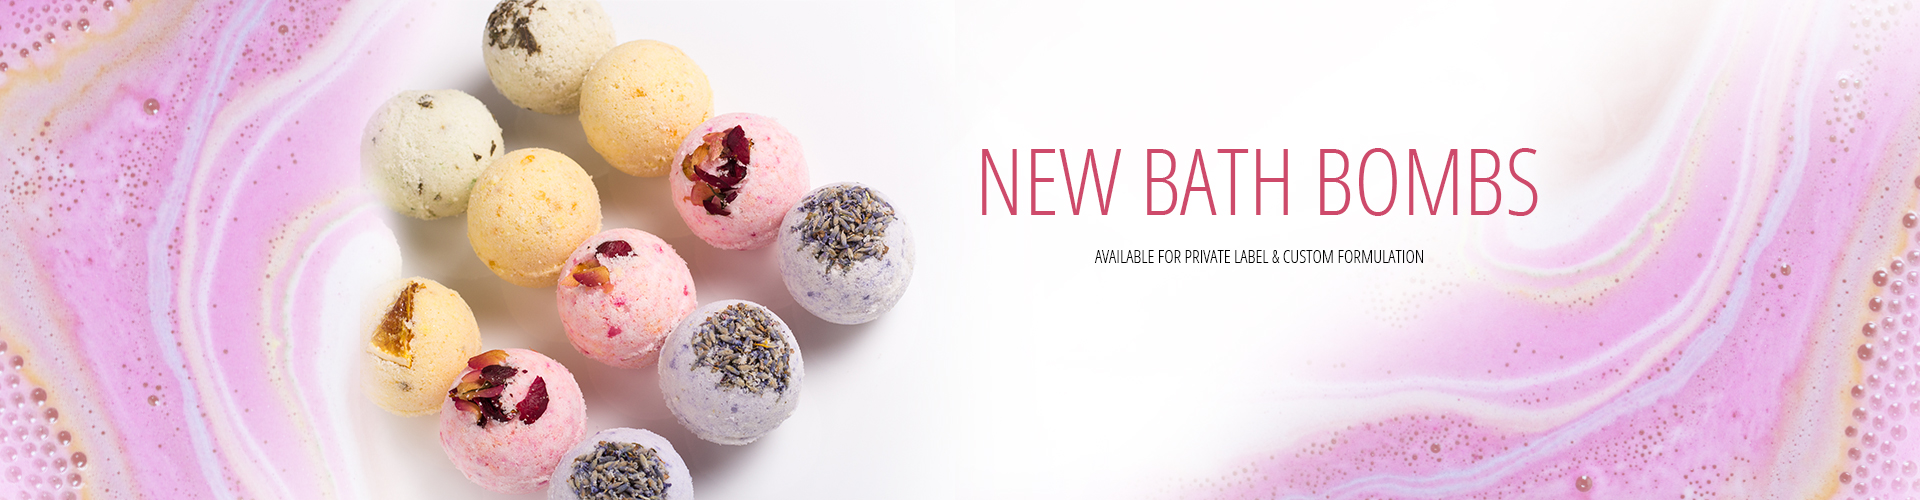 Private Label Bathbombs